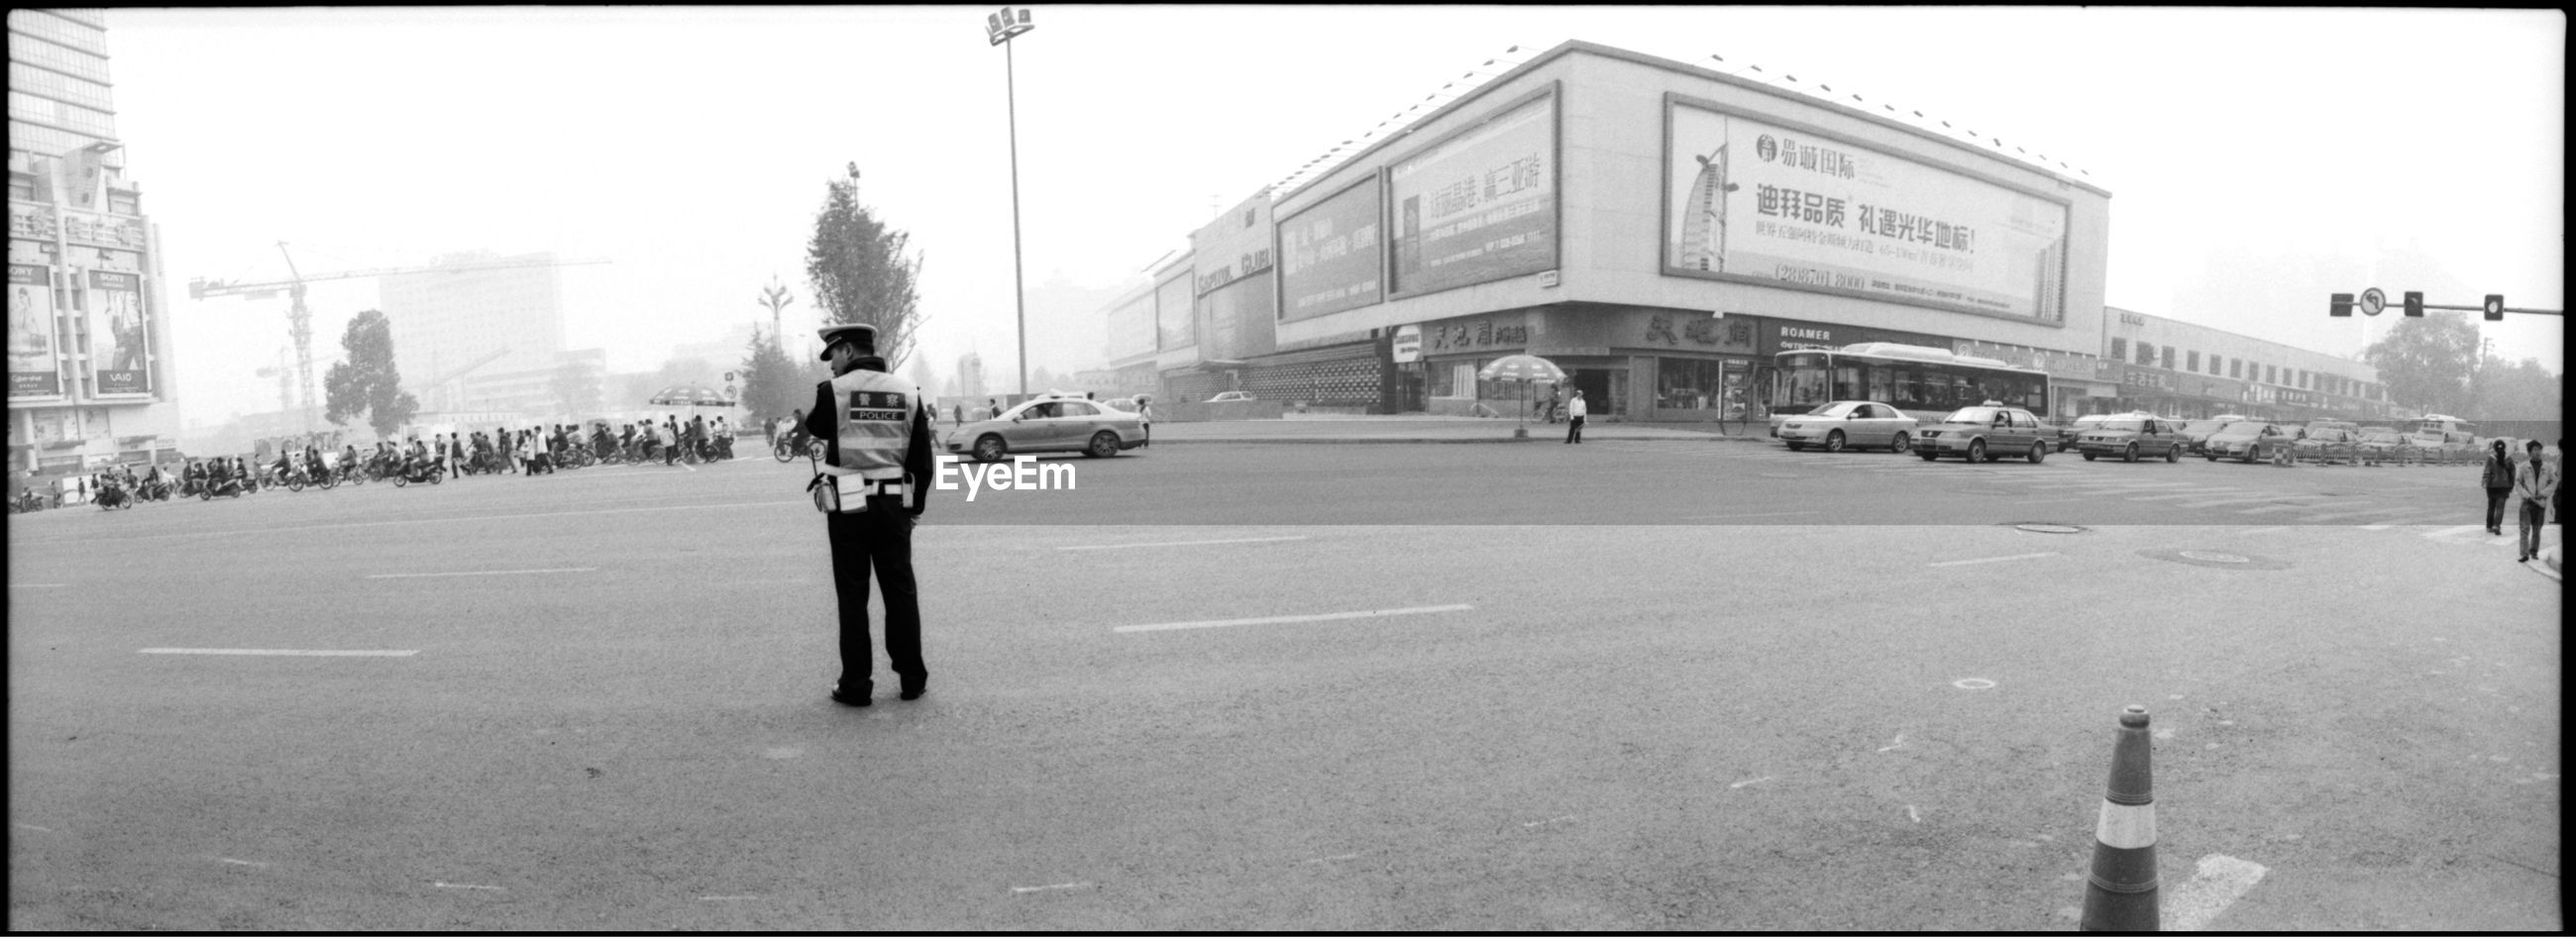 Rear view of a traffic police standing on road